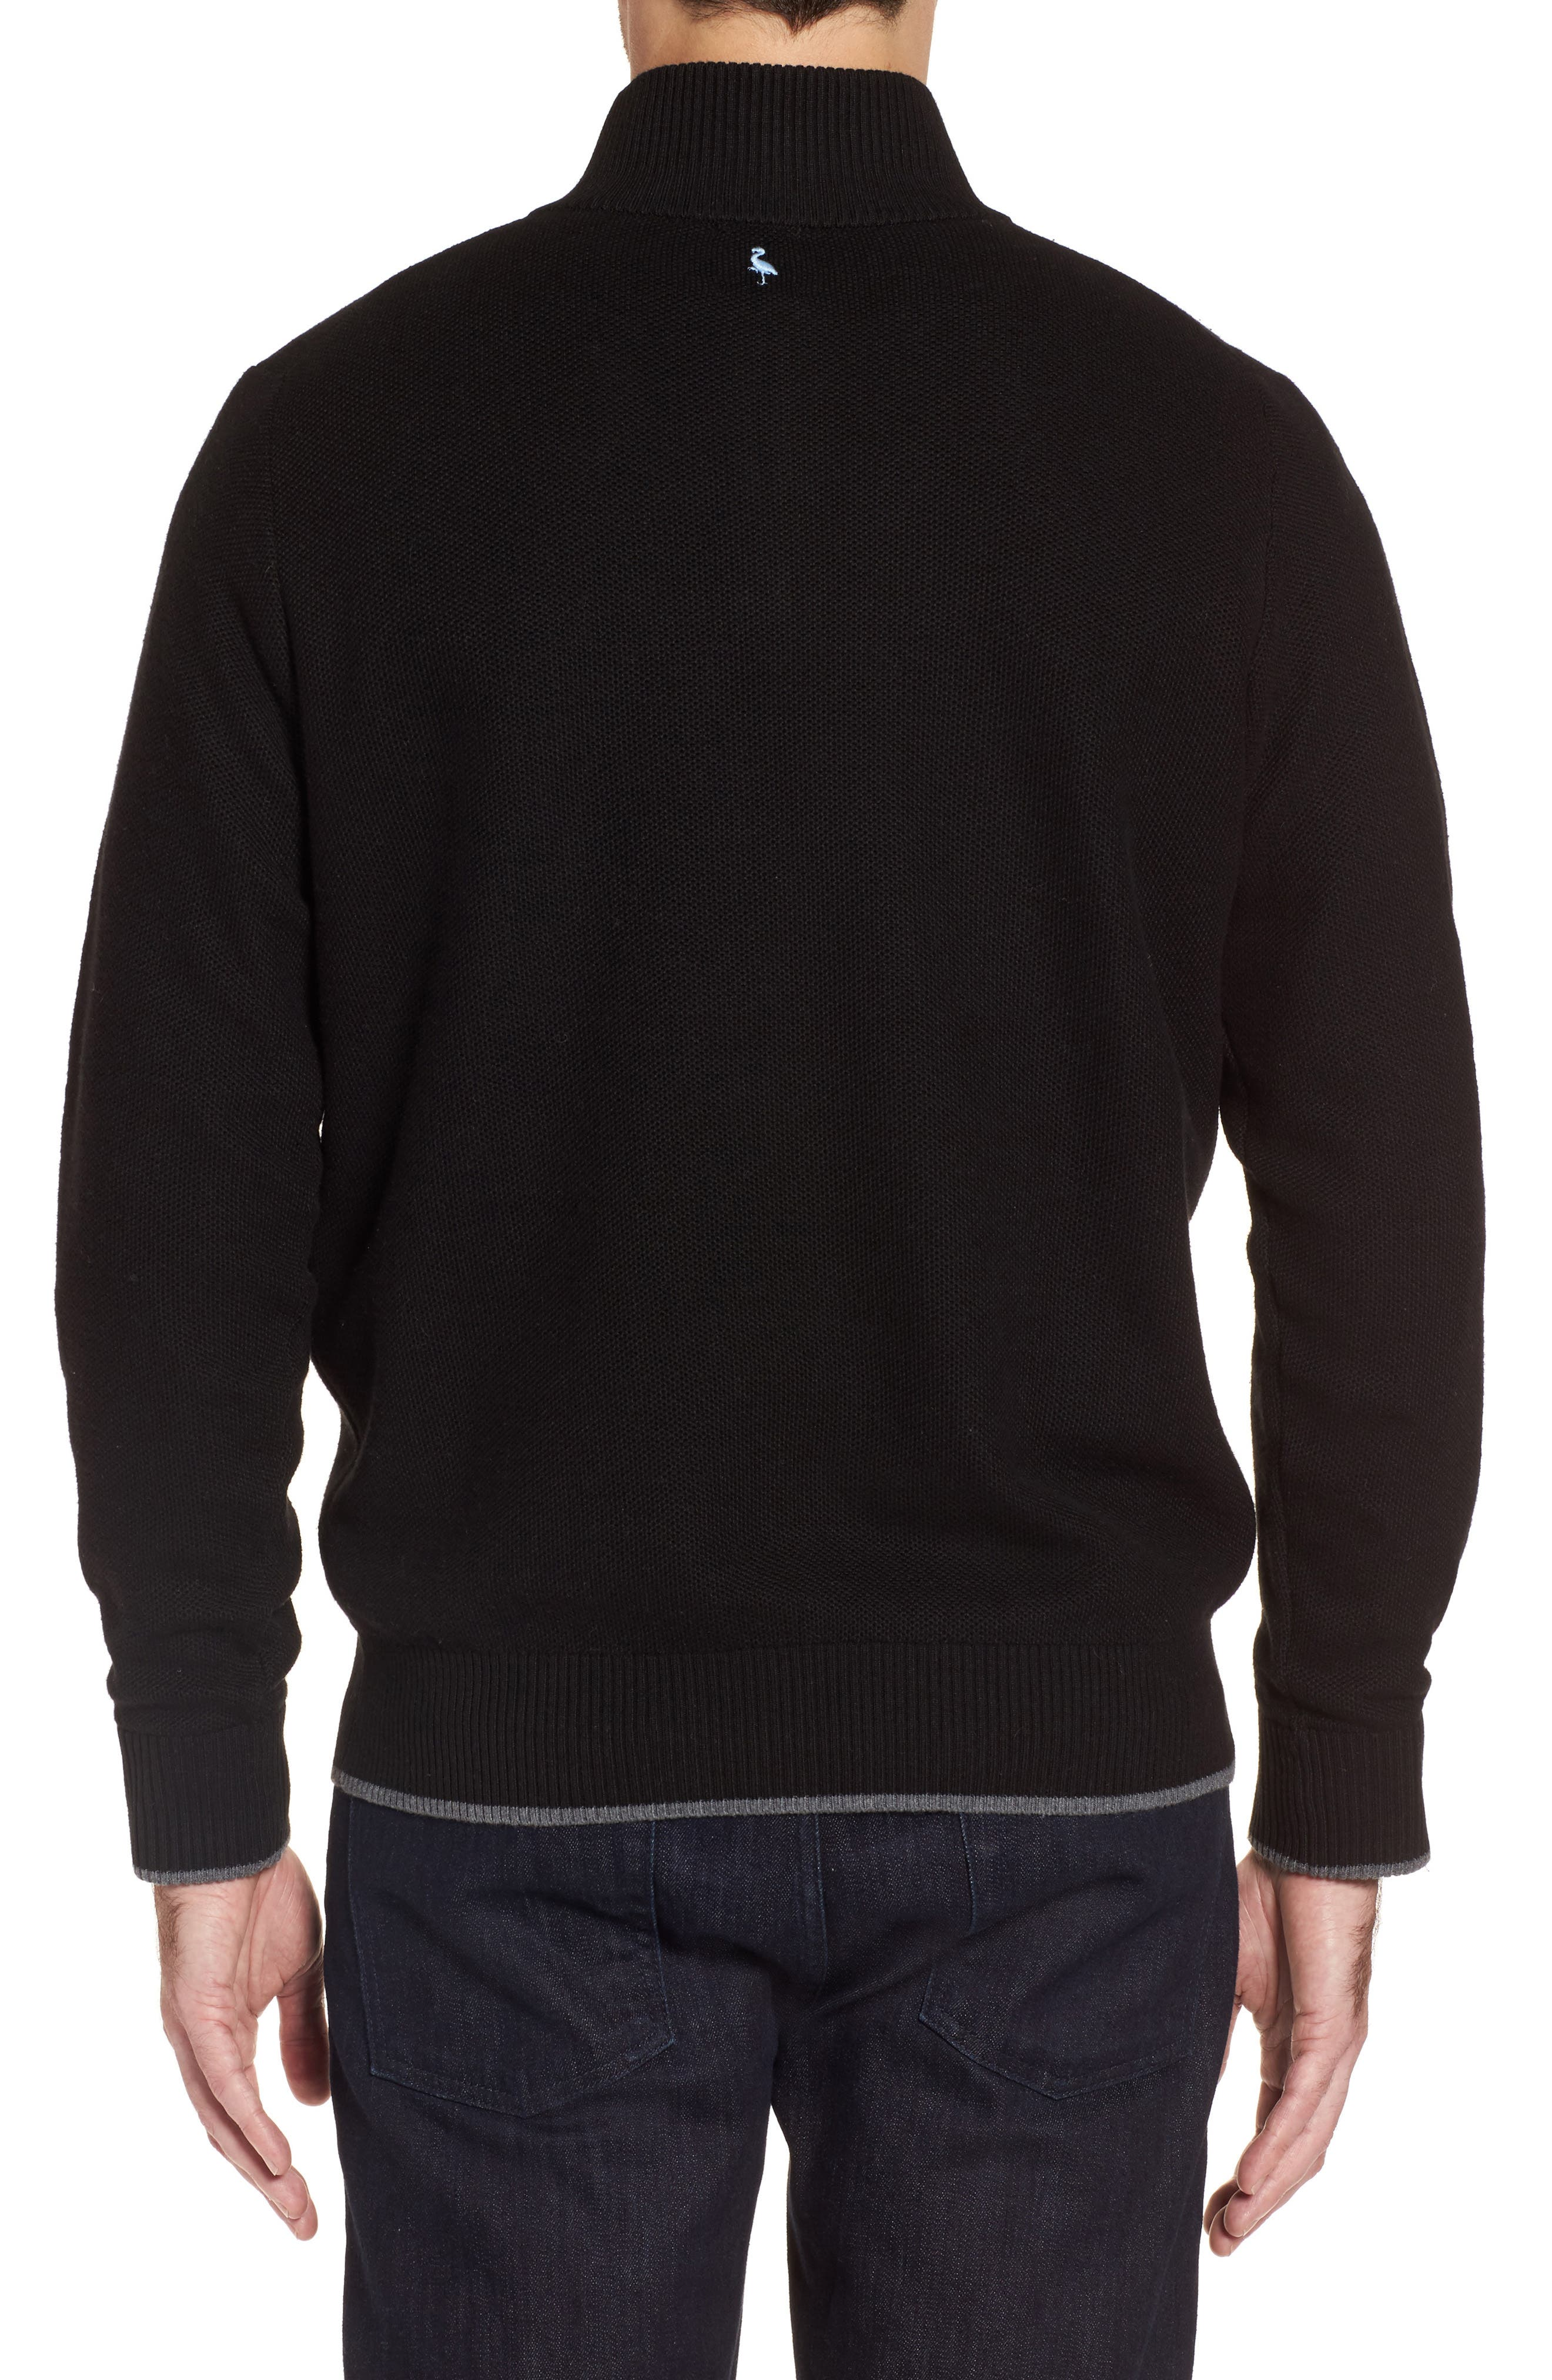 Lafitte Tipped Quarter Zip Sweater,                             Alternate thumbnail 2, color,                             001